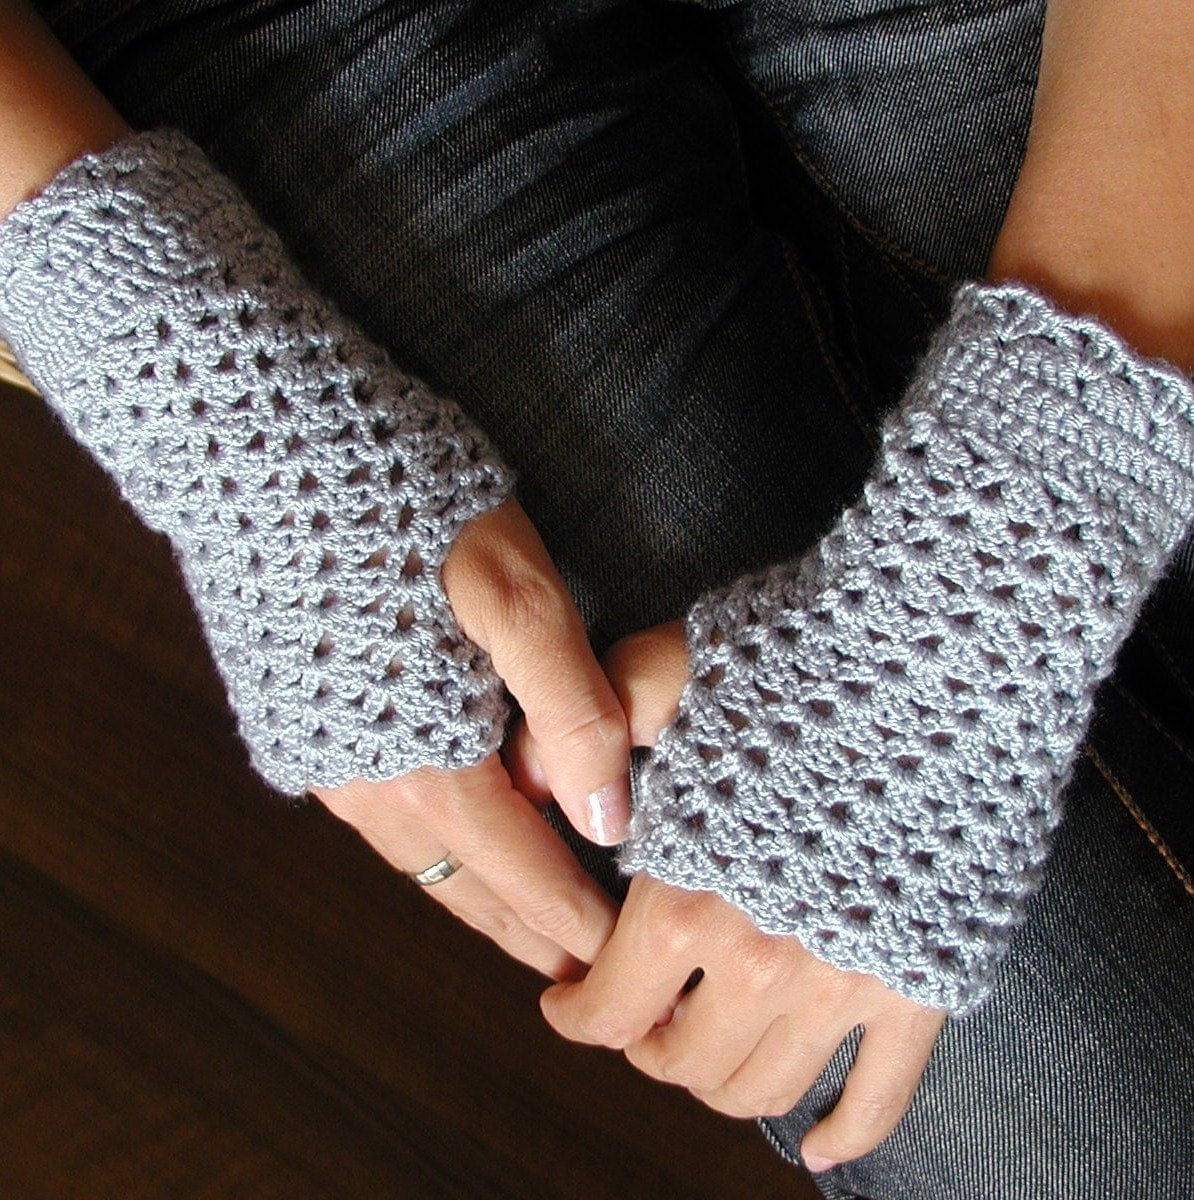 Crochet Fingerless Gloves : Crocheted Fingerless Mittens PDF Crochet Pattern by FrougesArt